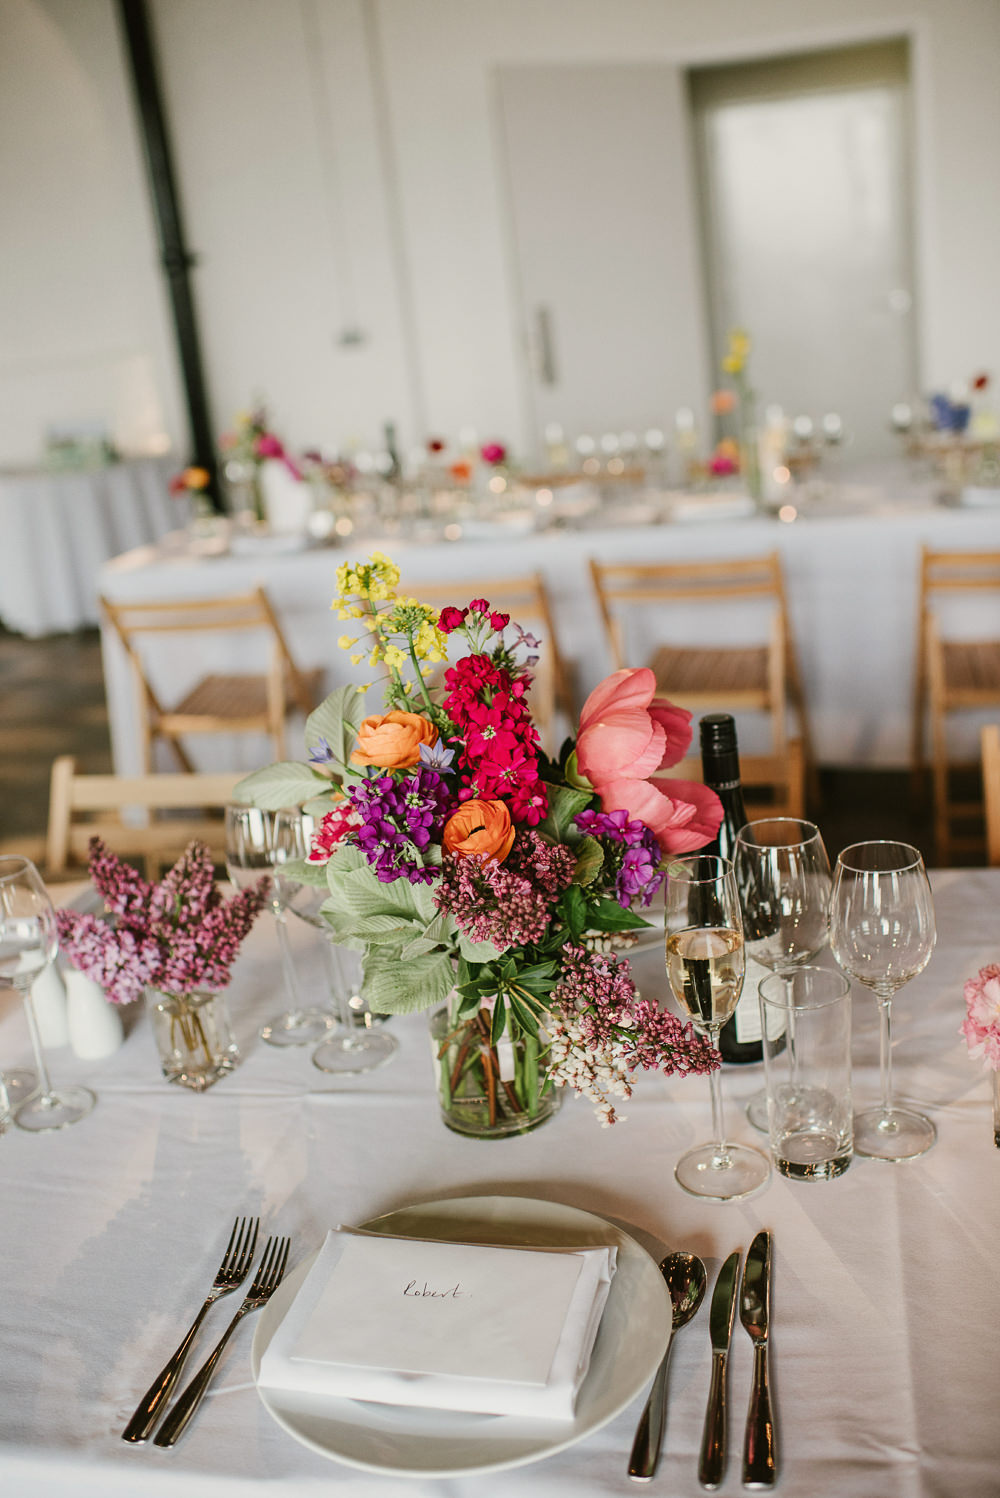 Bottle Flowers Table Decor Centrepiece Spring Coral Peony Natural Wild Colourful Riverside London Wedding Ellie Gillard Photography